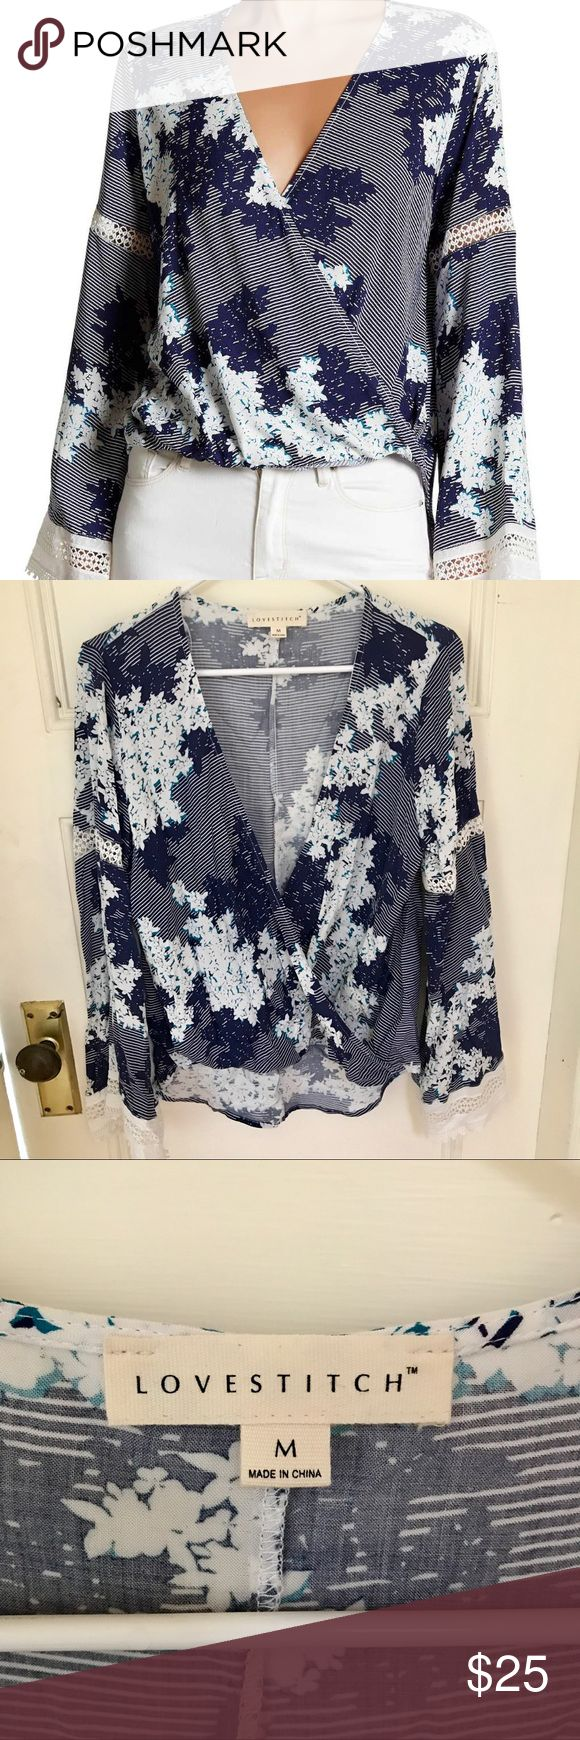 Love Stitch Bell Sleeve blouse This tops is so perfect for any event.  The bell sleeves have a lace trim around them that is so pretty.  I have only worn this one time so in excellent condition.  Purchased off Nordstrom Rack website. Love Stitch Tops